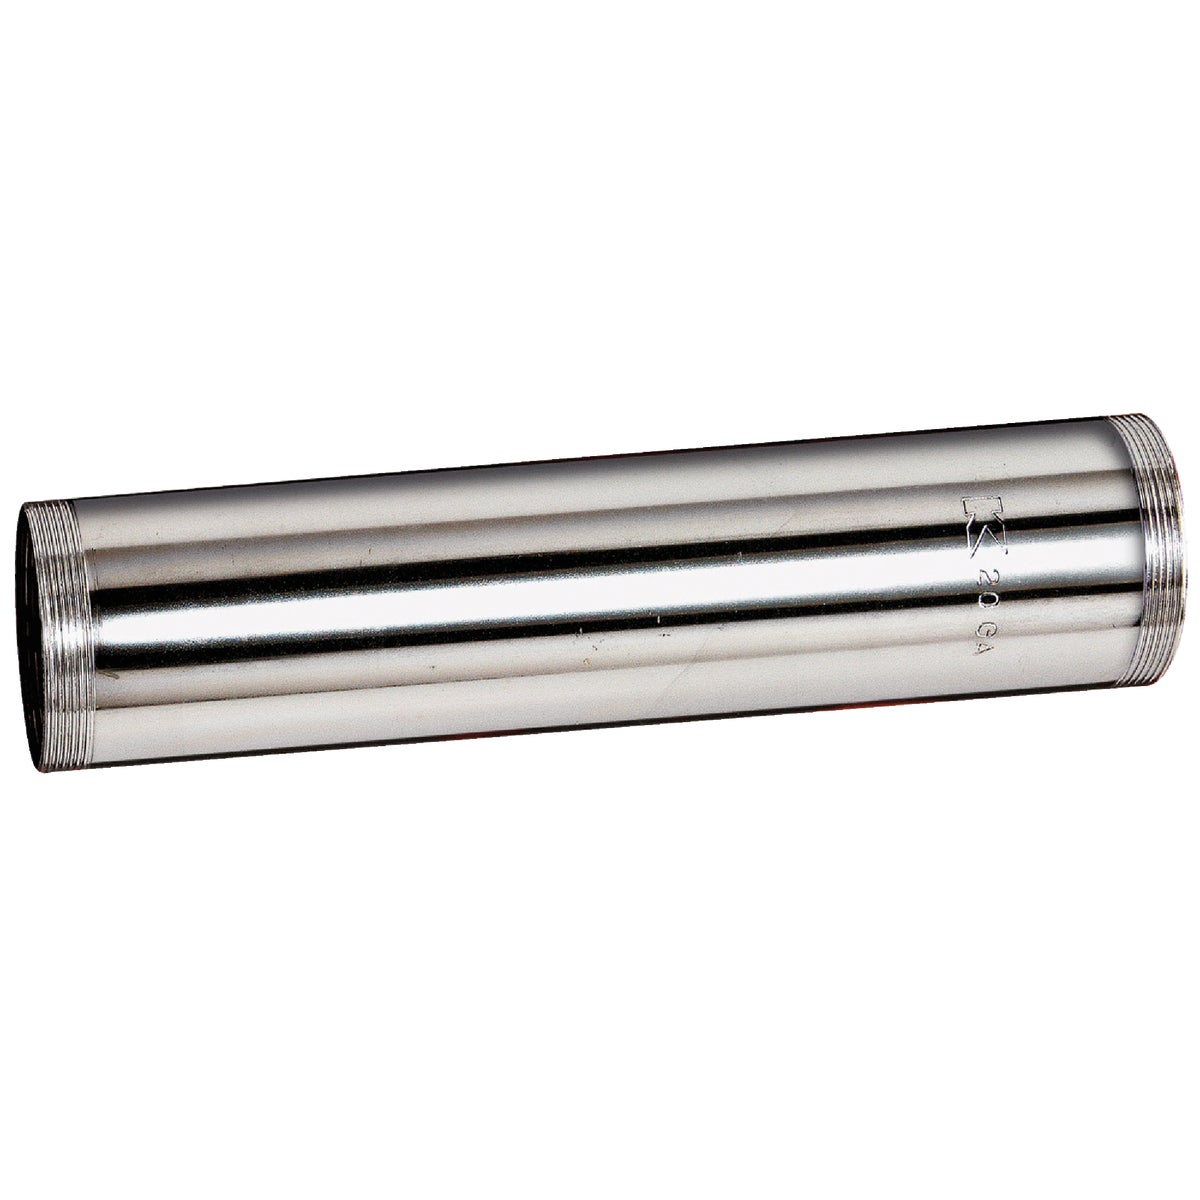 1-1/2X6 THREADED TUBE - 495654 by Plumb Pak/keeney Mfg